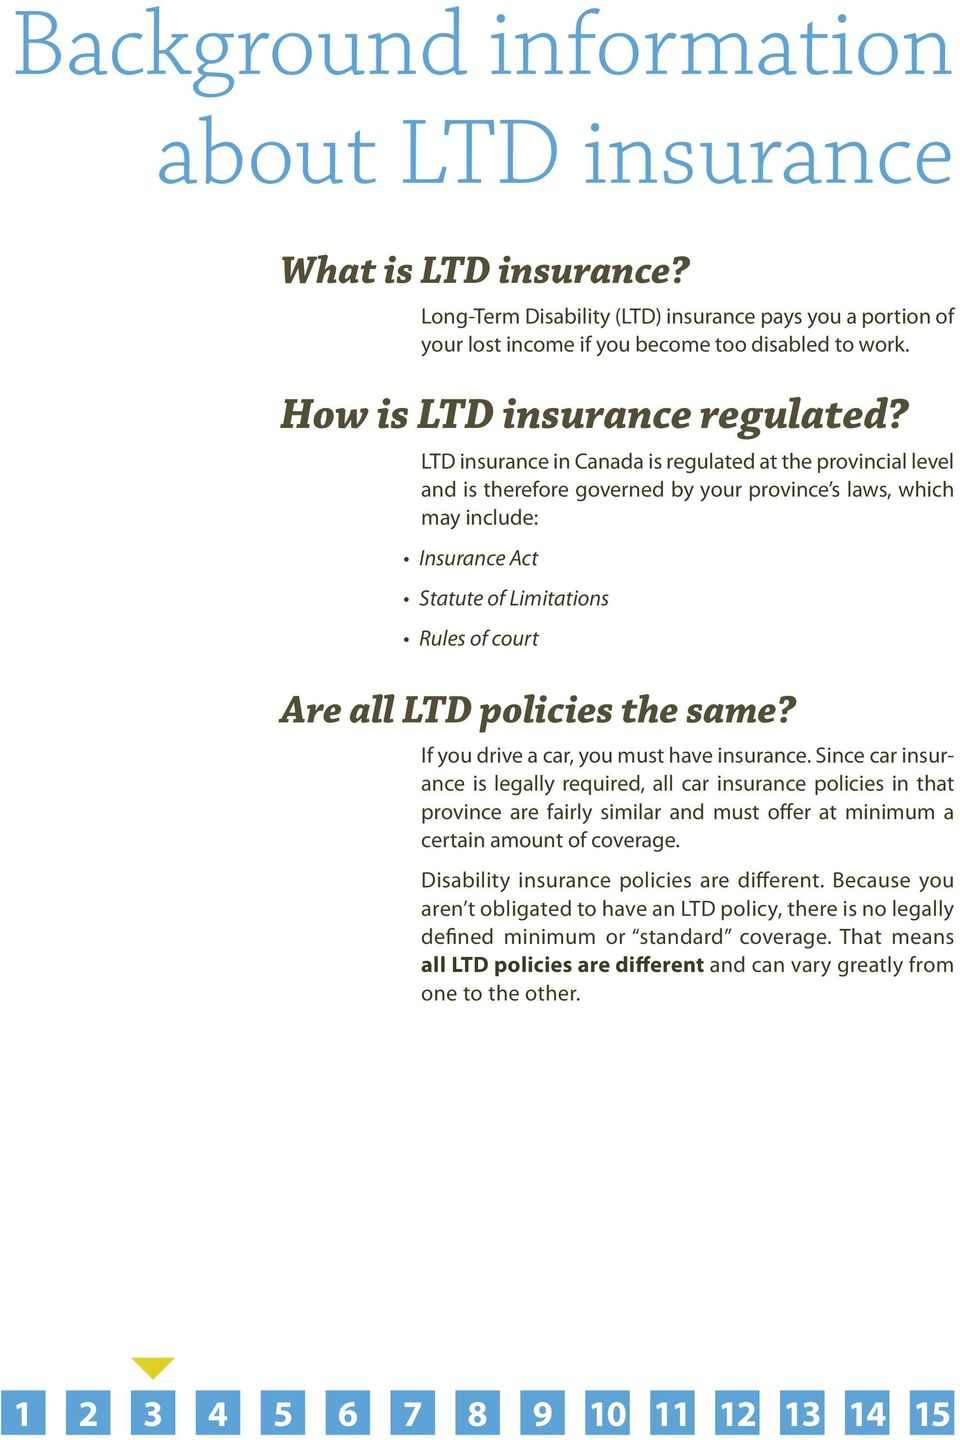 LTD insurance in Canada is regulated at the provincial level and is therefore governed by your province s laws, which may include: Insurance Act Statute of Limitations Rules of court Are all LTD